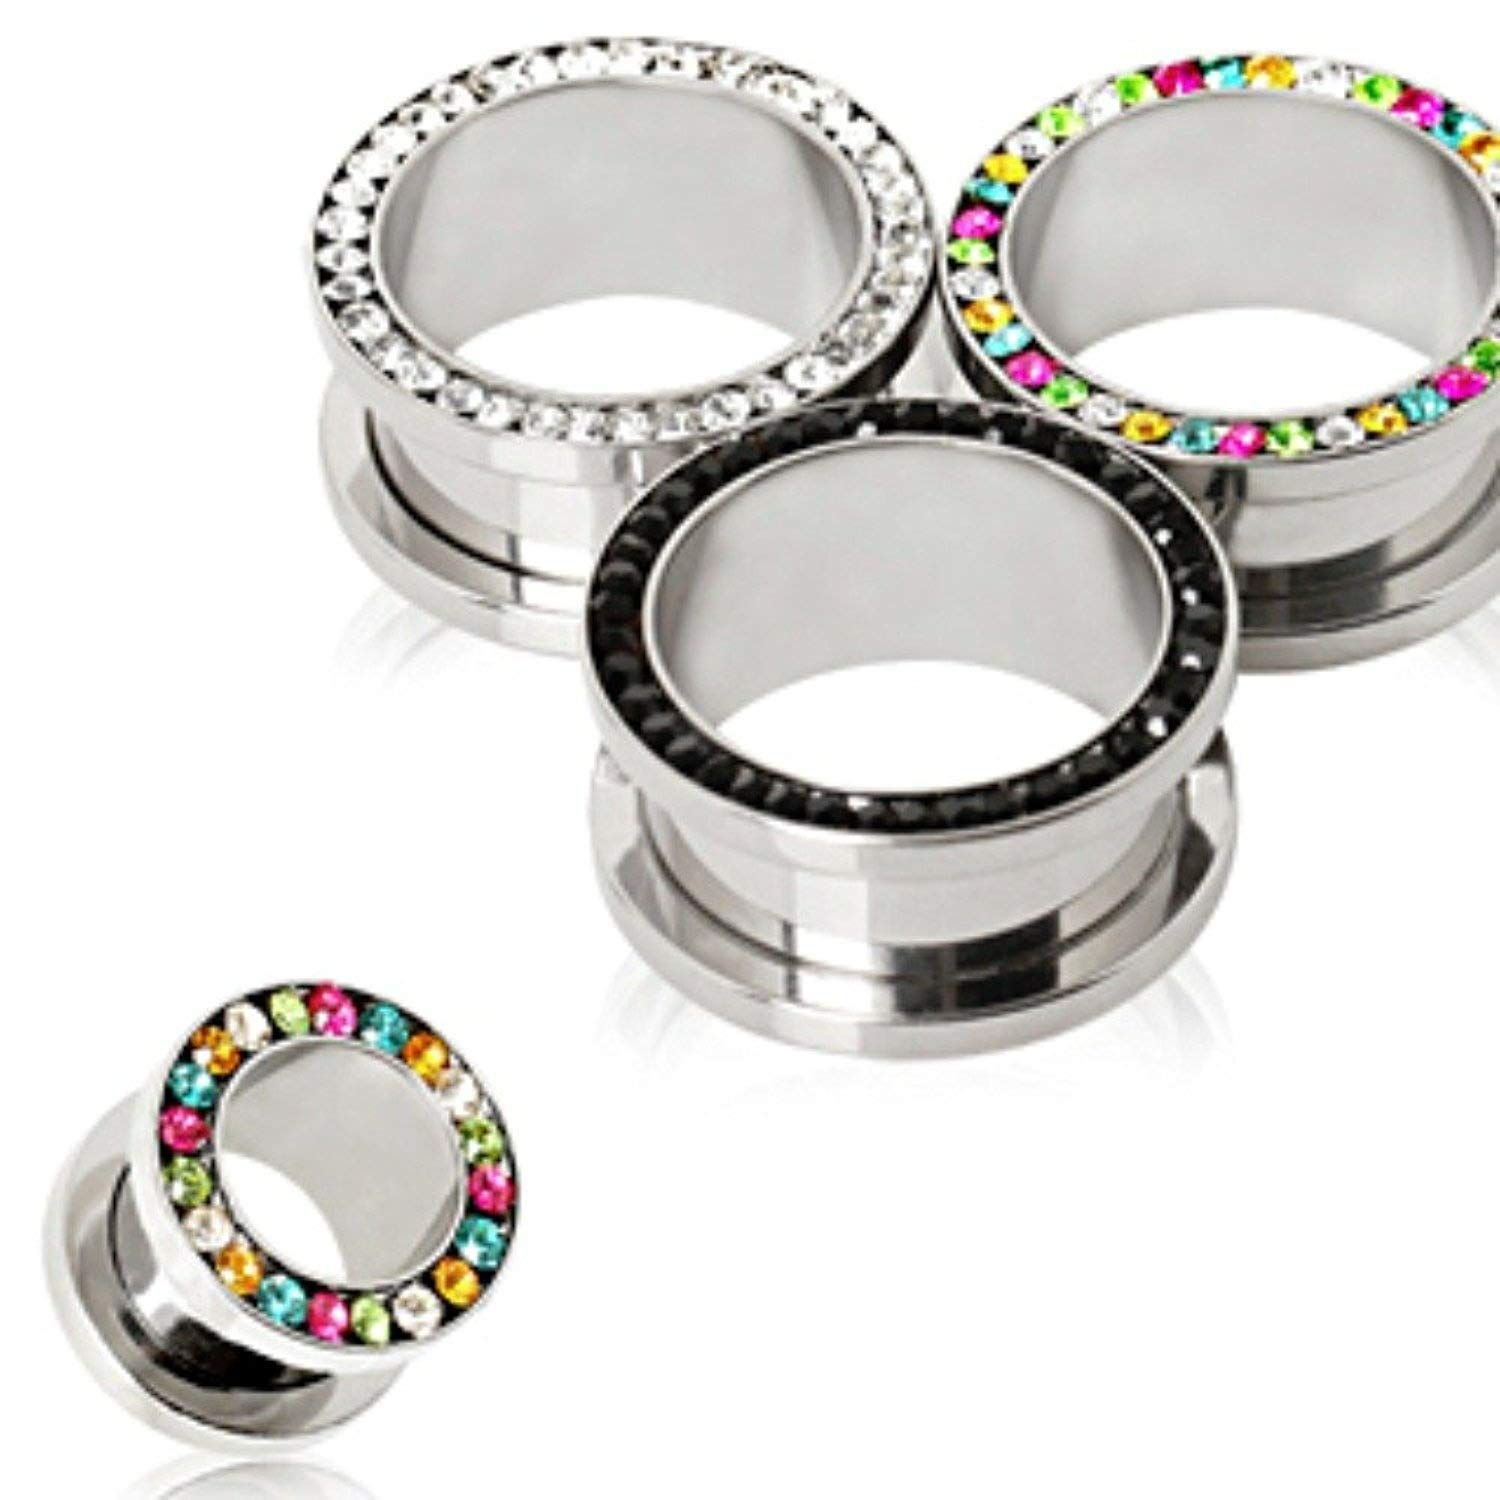 Covet Jewelry 316L Surgical Steel Multi CZ Screw Fit Tunnel Plug (7/8'', Rainbow) by Covet Jewelry